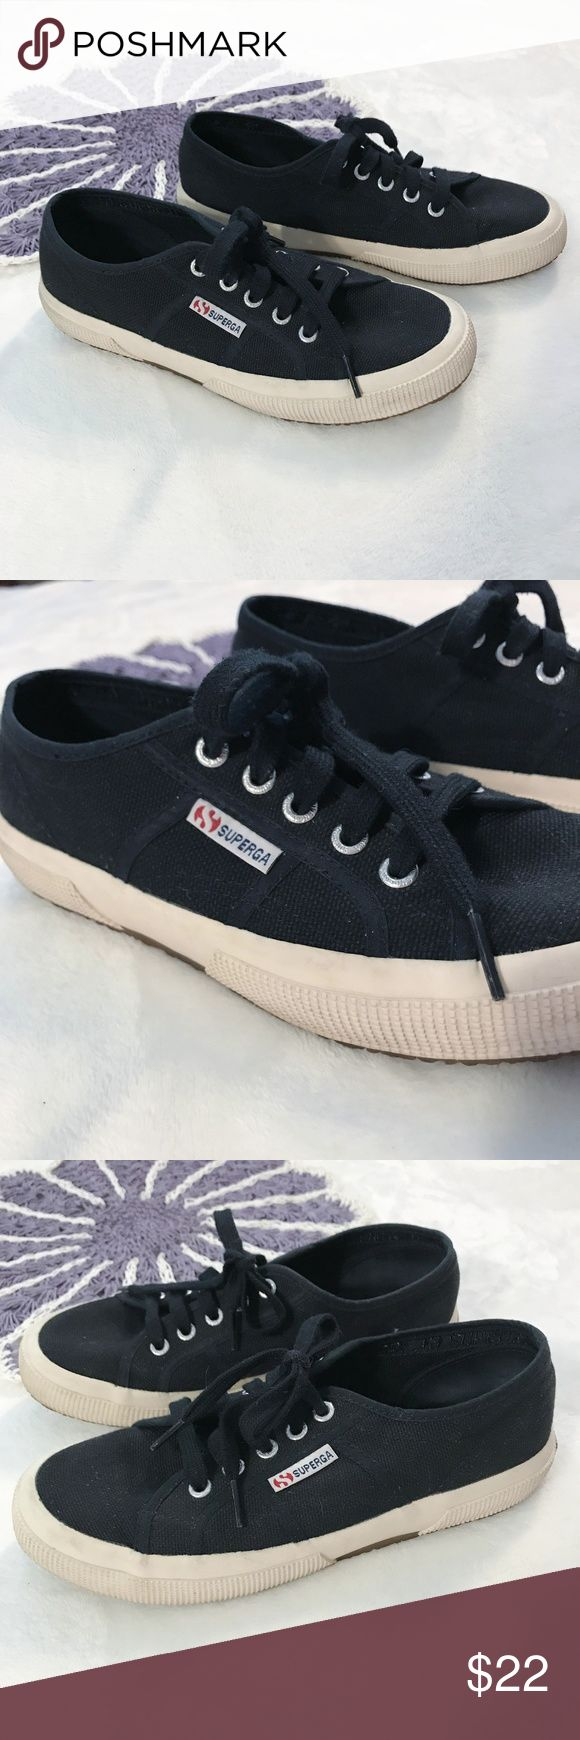 Superga Black Canvas Sneakers Superga black canvas sneakers.  Bottoms could use a deep clean but otherwise they are in great condition! Size 7 US true to size. Superga Shoes Sneakers